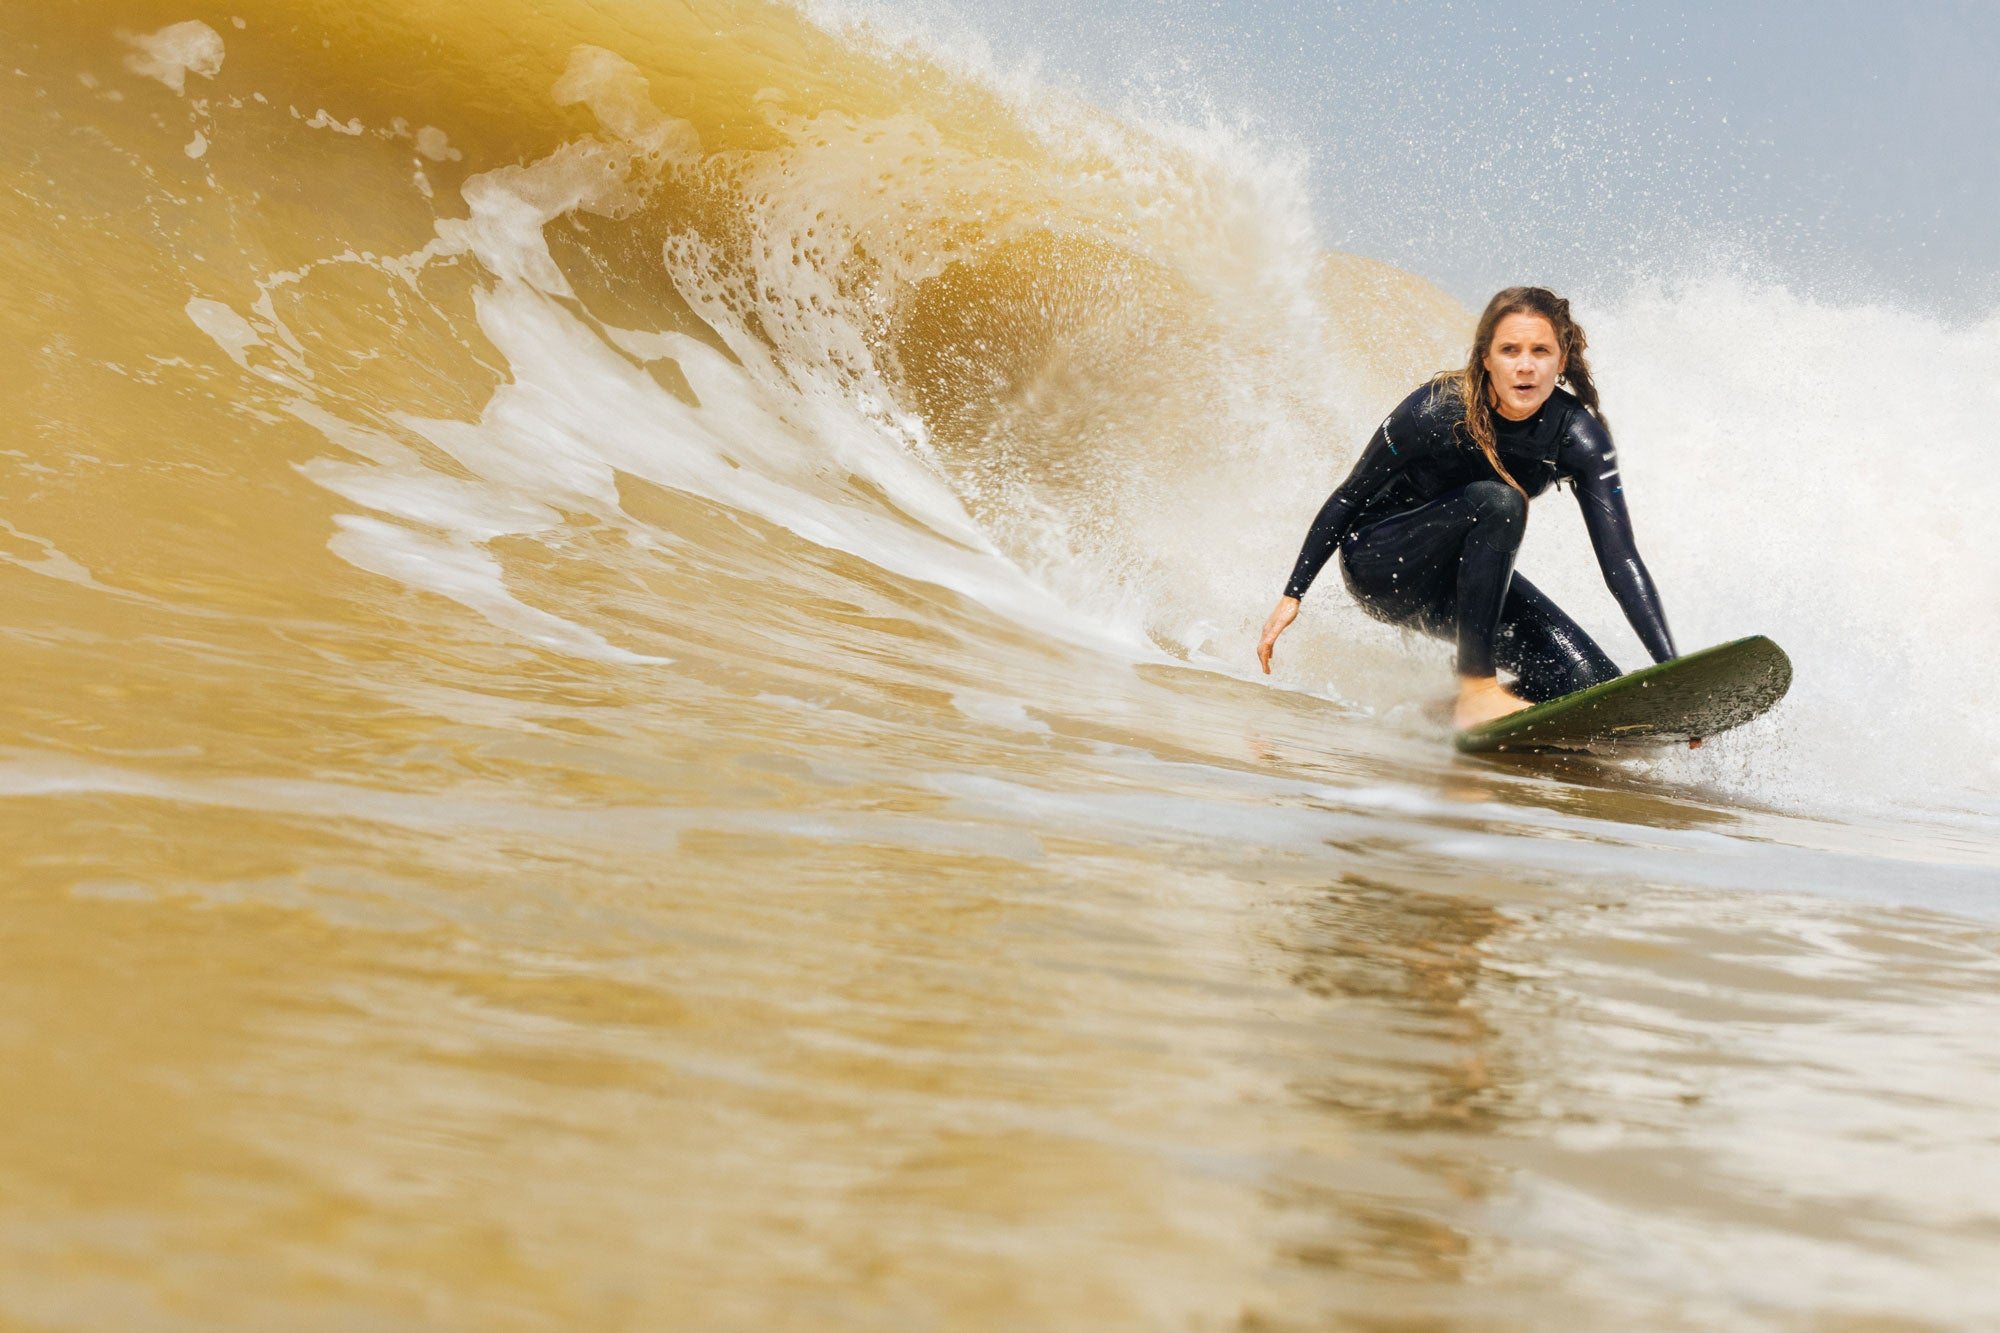 Head-of-Finisterre-repairs-Amy-Brock-Morgan-grabbing-the-rail-as-she-turns-onto-the-face-of-a-wave-in-Senegal